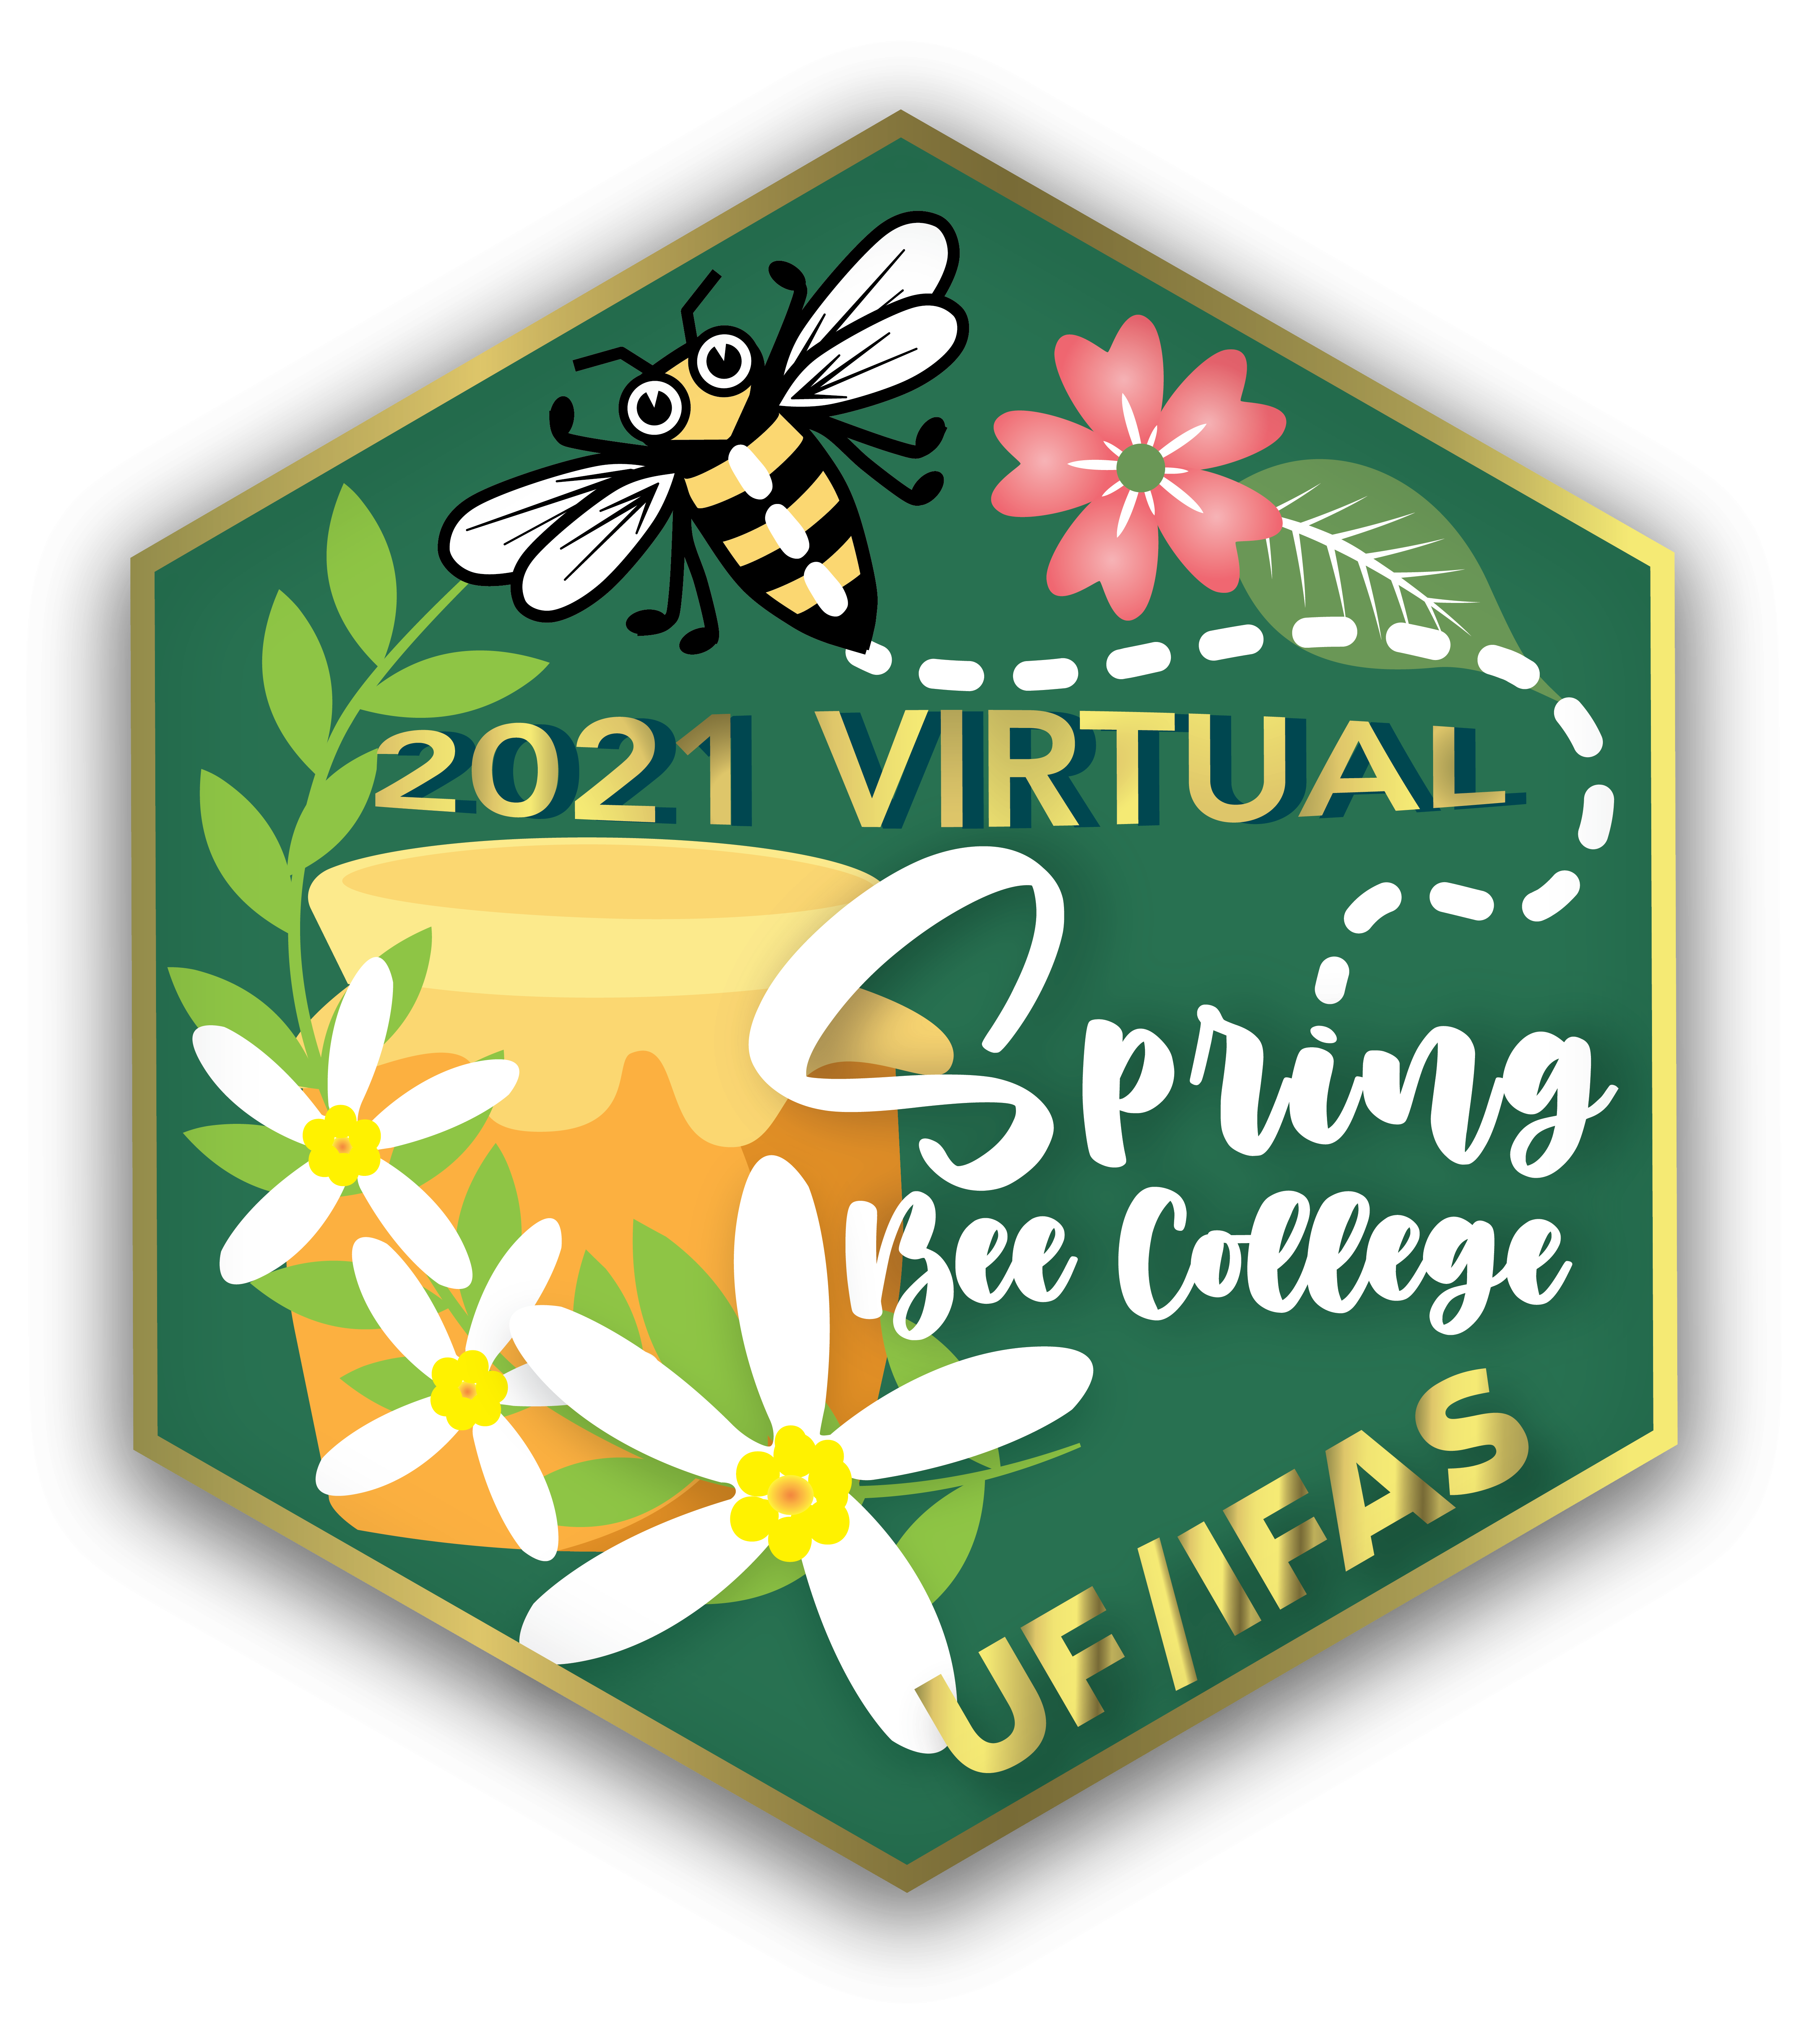 UF/IFAS 2021 Virtual Spring Bee College